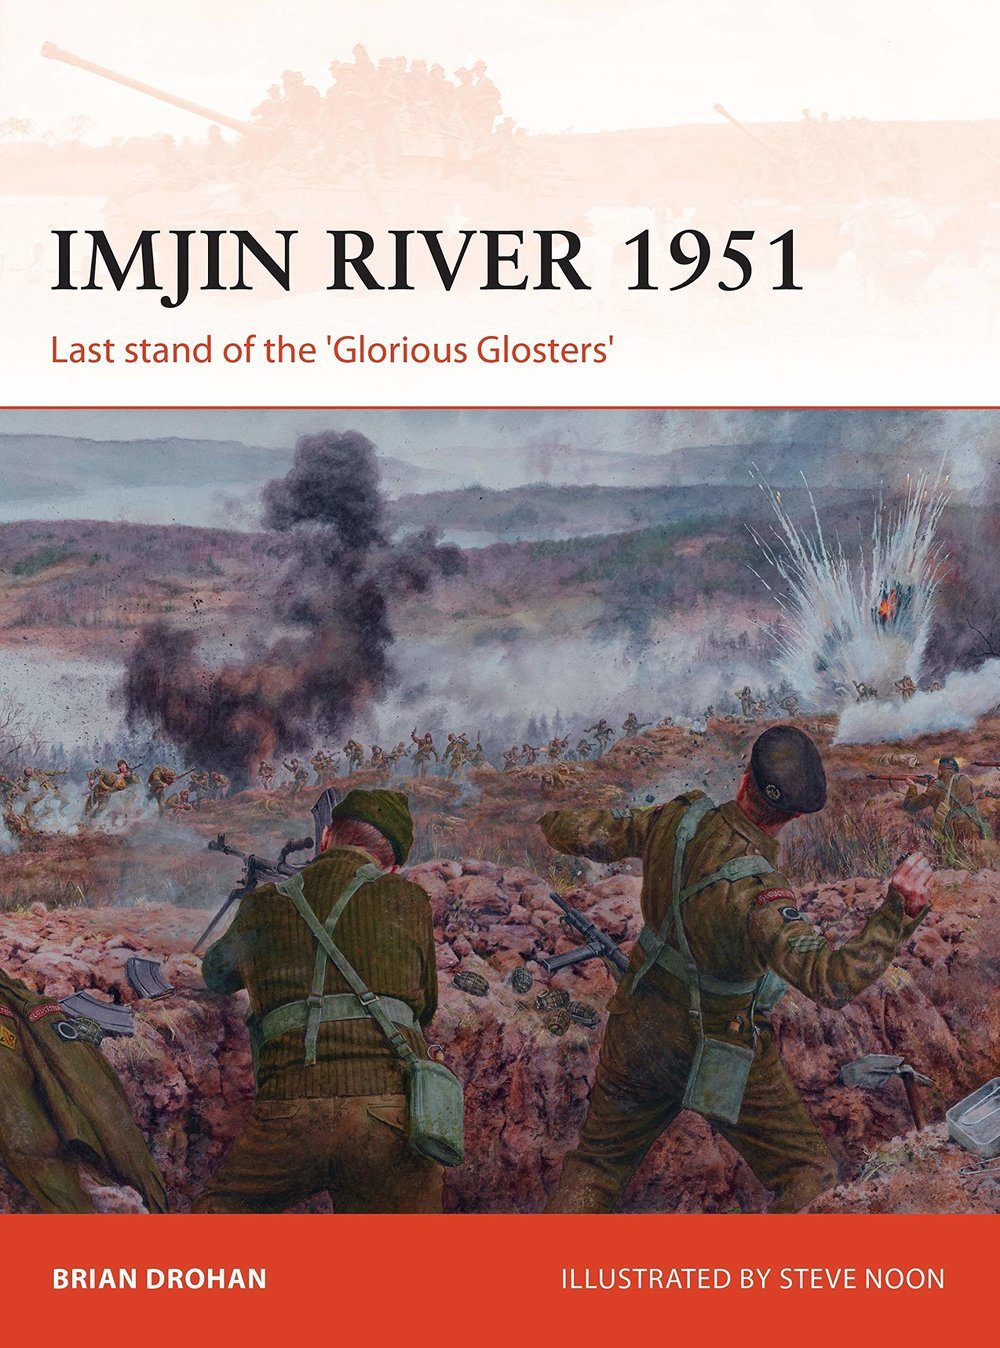 "Imjin River 1951 - My second book is a short operational history analyzing the 1951 Battle of the Imjin River, where British troops fought alongside South Korean, American, Belgian, and Philippine soldiers in one of the toughest engagements of the Korean War.Although the battle is famous for the 1st Battalion, Gloucestershire Regiment's ""last stand,"" there is much more to the story from both the Chinese/North Korean and the United Nations forces' perspectives."